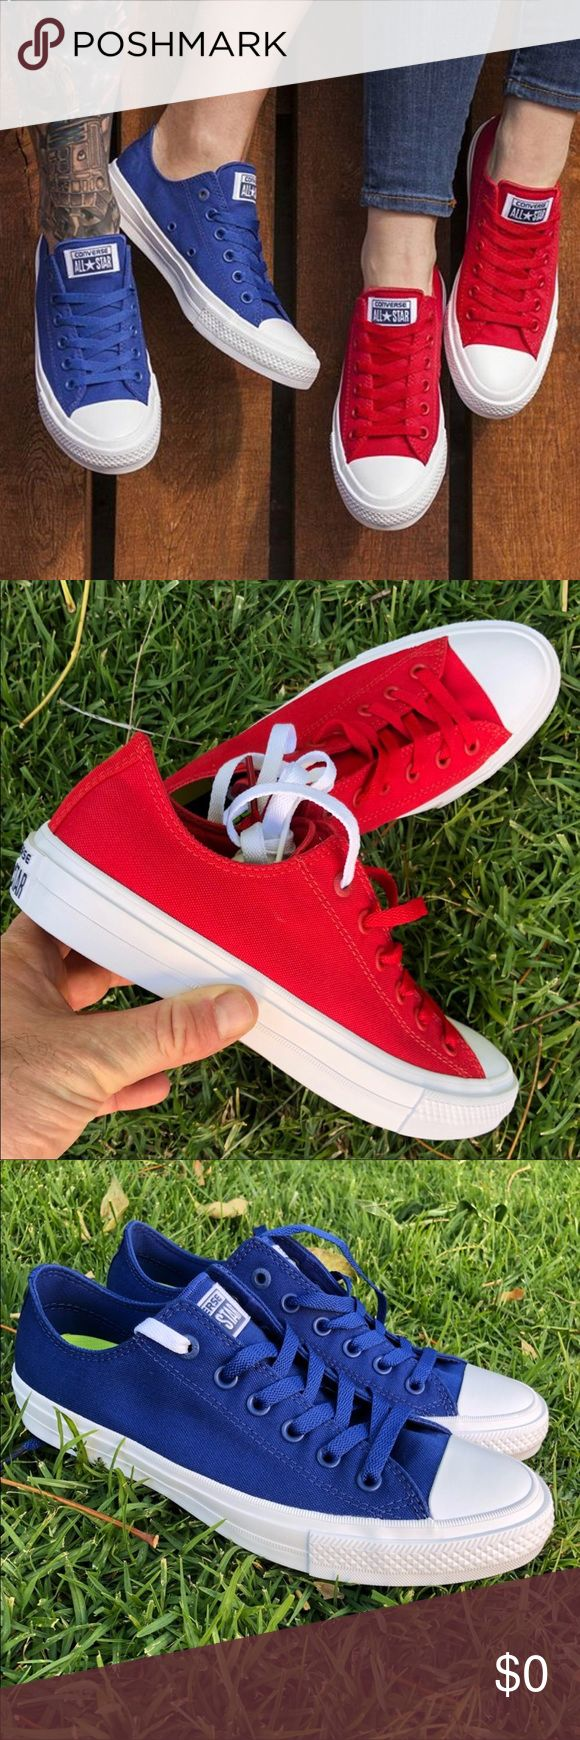 CONVERSE ALLSTAR II 😍 FOR HIM & HER Red & blue colors are both available for men and women! ❤️😍💙 get some! Check my page for your size!   Same or next day shipping in original box.   Bundle items to save! Converse Shoes Sneakers